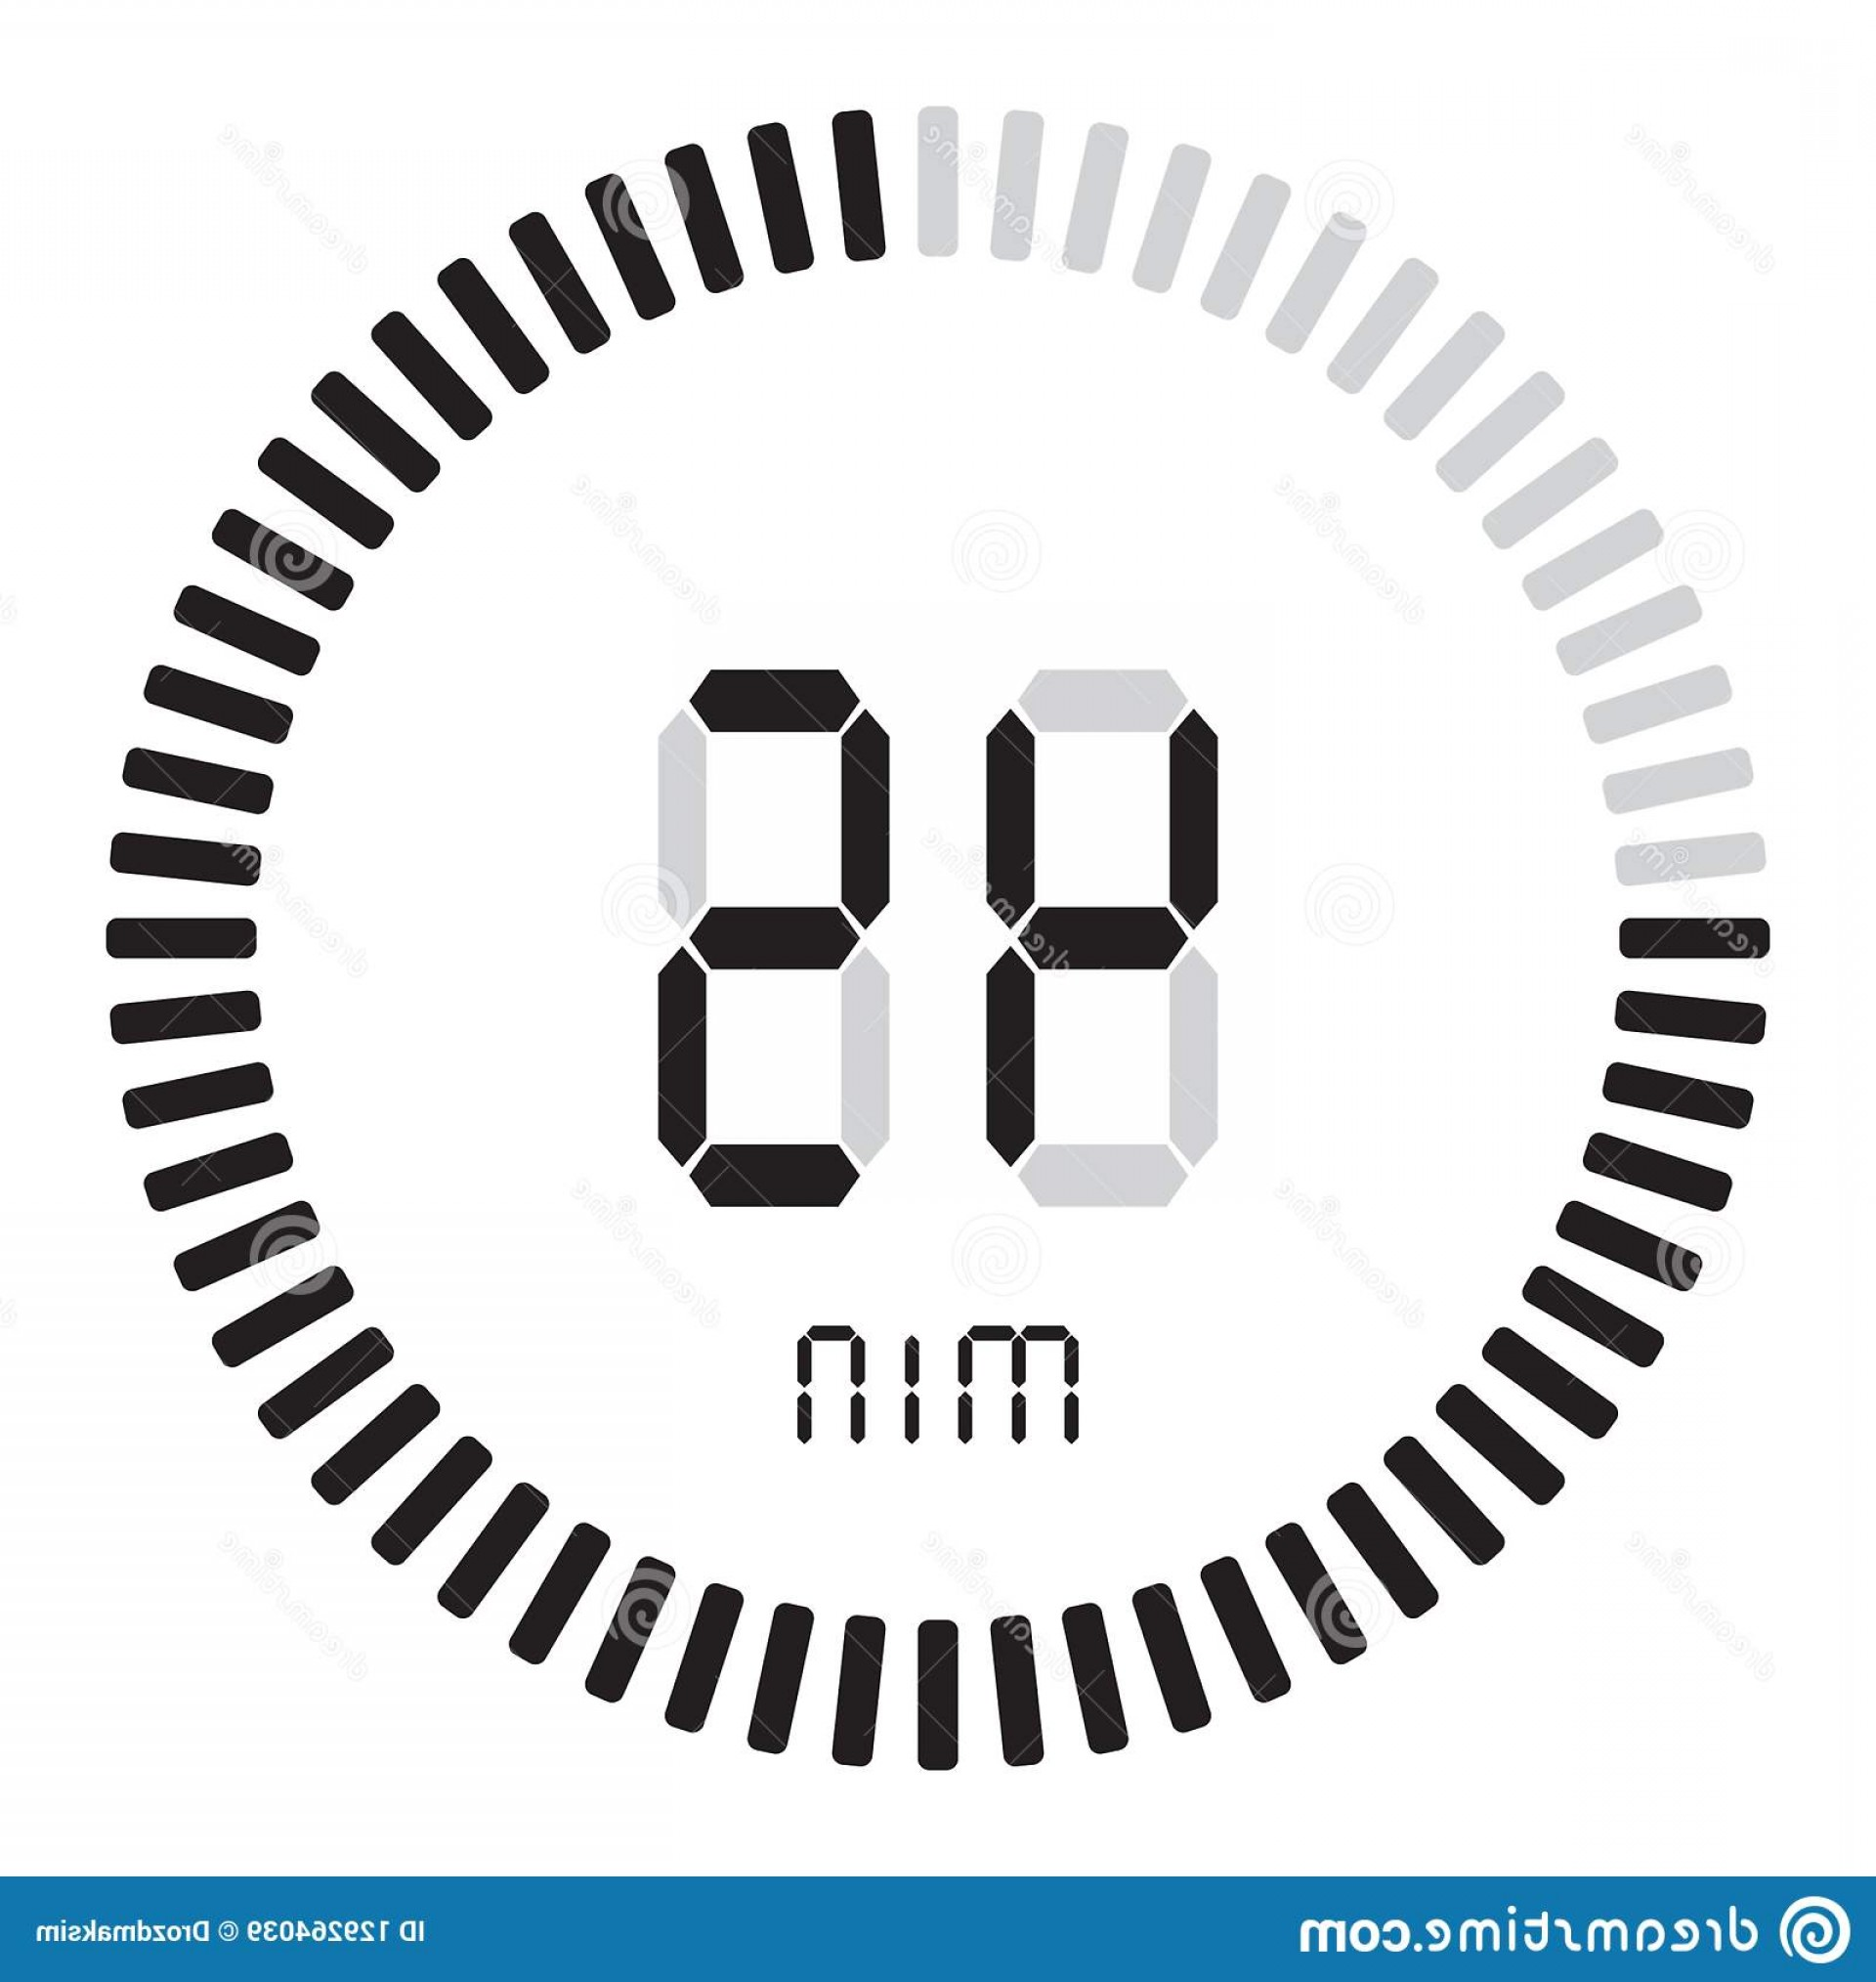 Stop Watch Vector Ai File: Digital Timer Minutes Electronic Stopwatch Gradient Dial Starting Vector Icon Clock Watch Timer Countdown Symbol Image